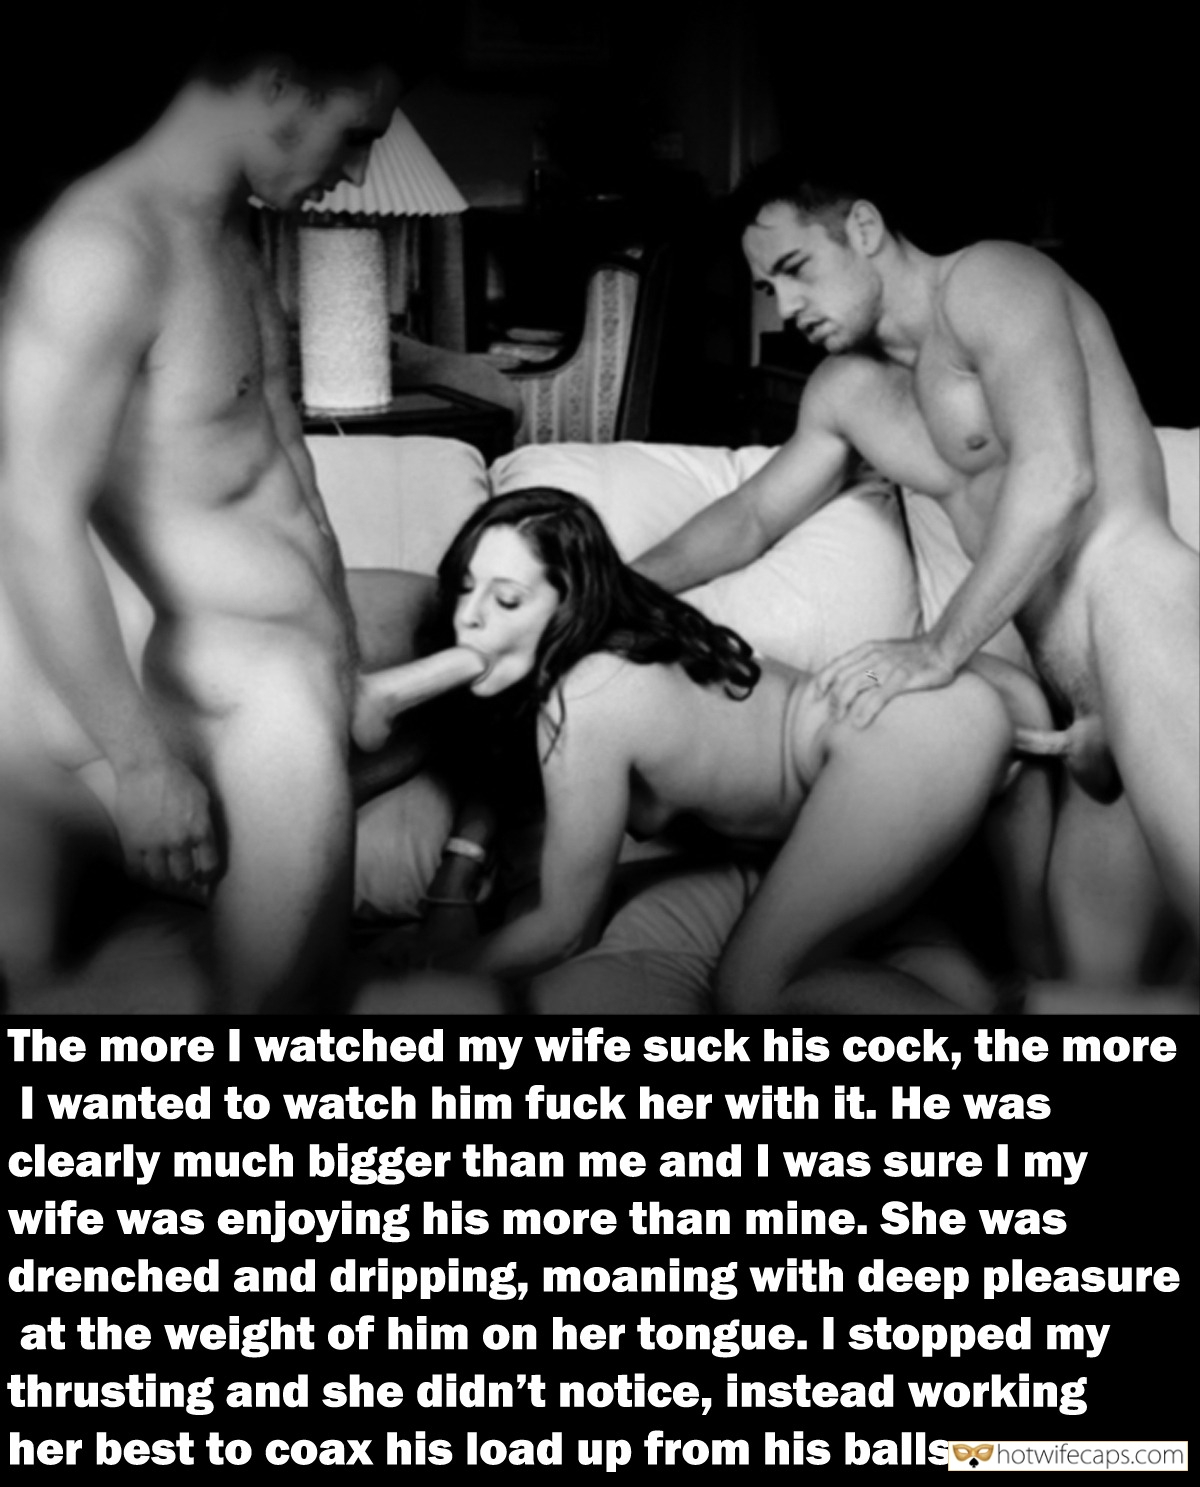 Wife Sharing Threesome Bull Bigger Cock  hotwife caption: The more I watched my wife suck his cock, the more I wanted to watch him fuck her with it. He was clearly much bigger than me and I was sure my wife was enjoying his more than mine. She...